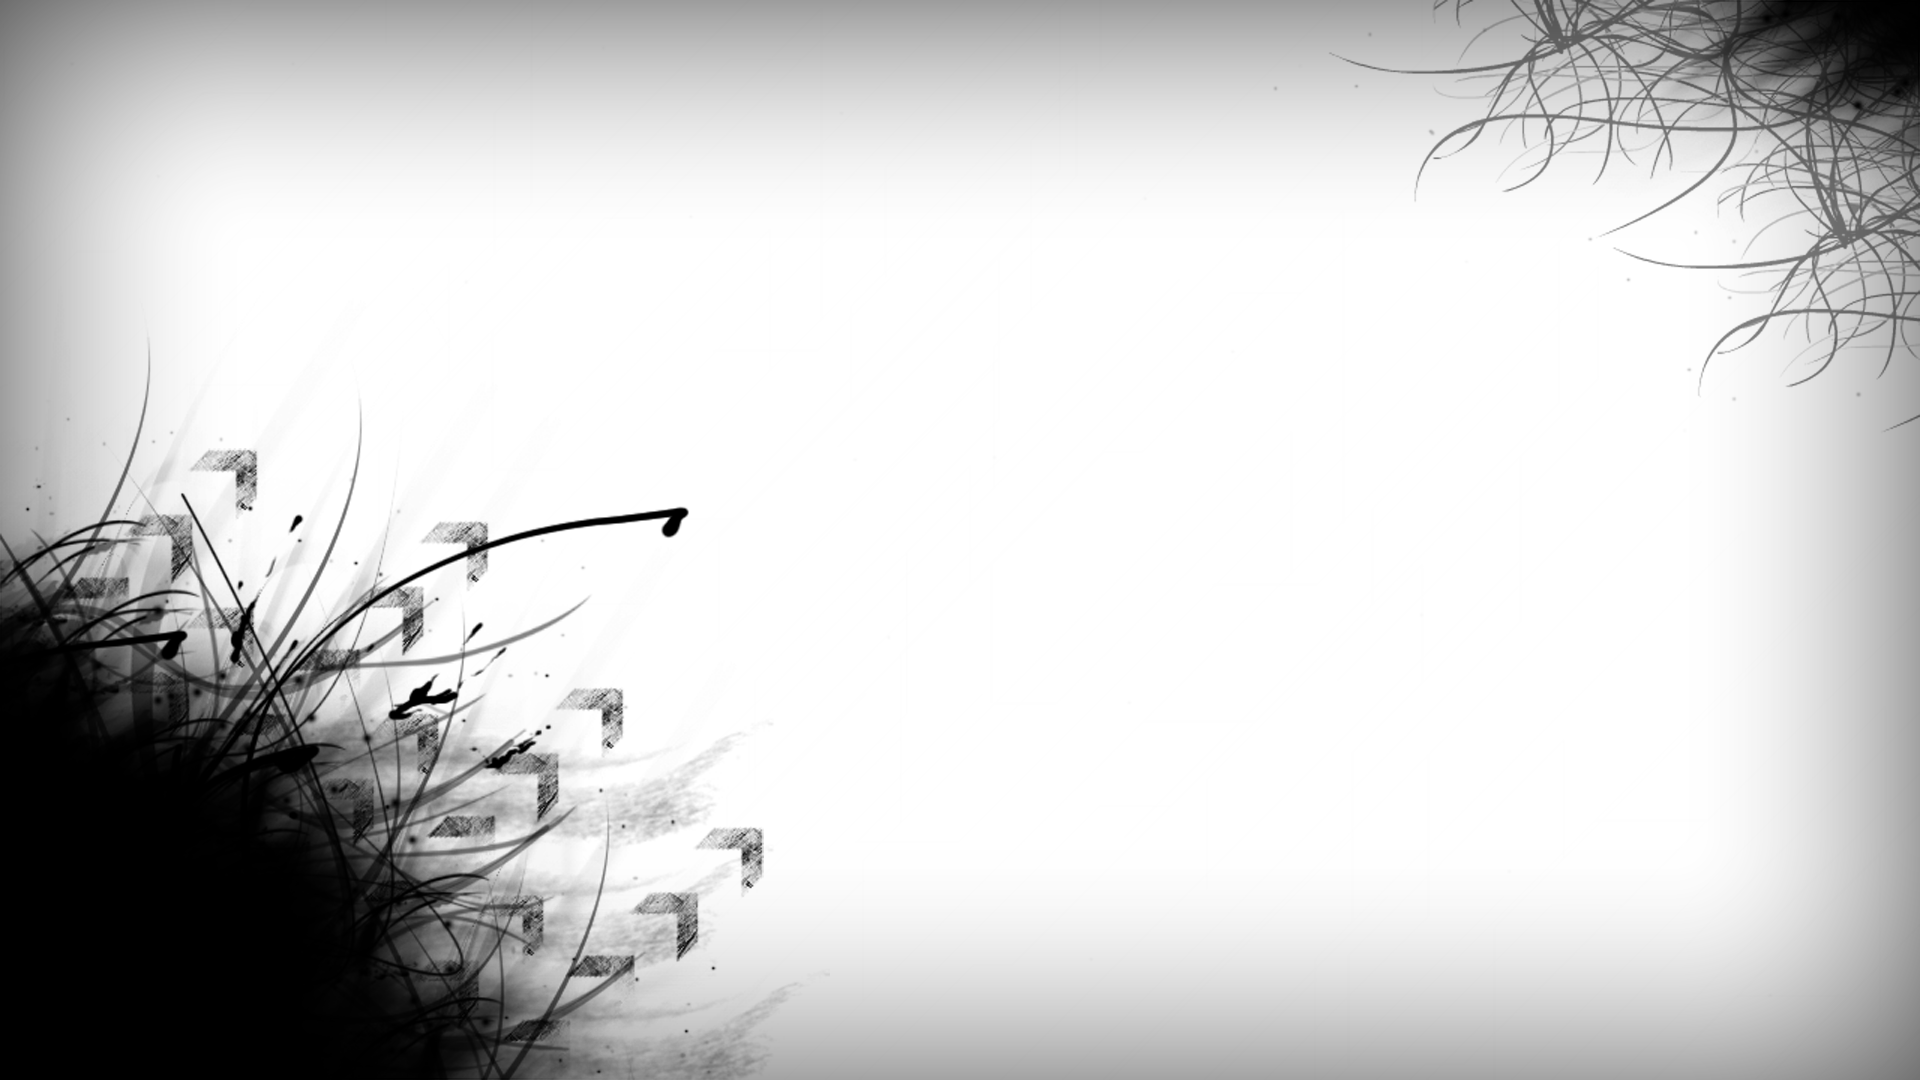 Black And White Wallpaper Abstract Wallpaper with 1920x1080 Resolution 1920x1080